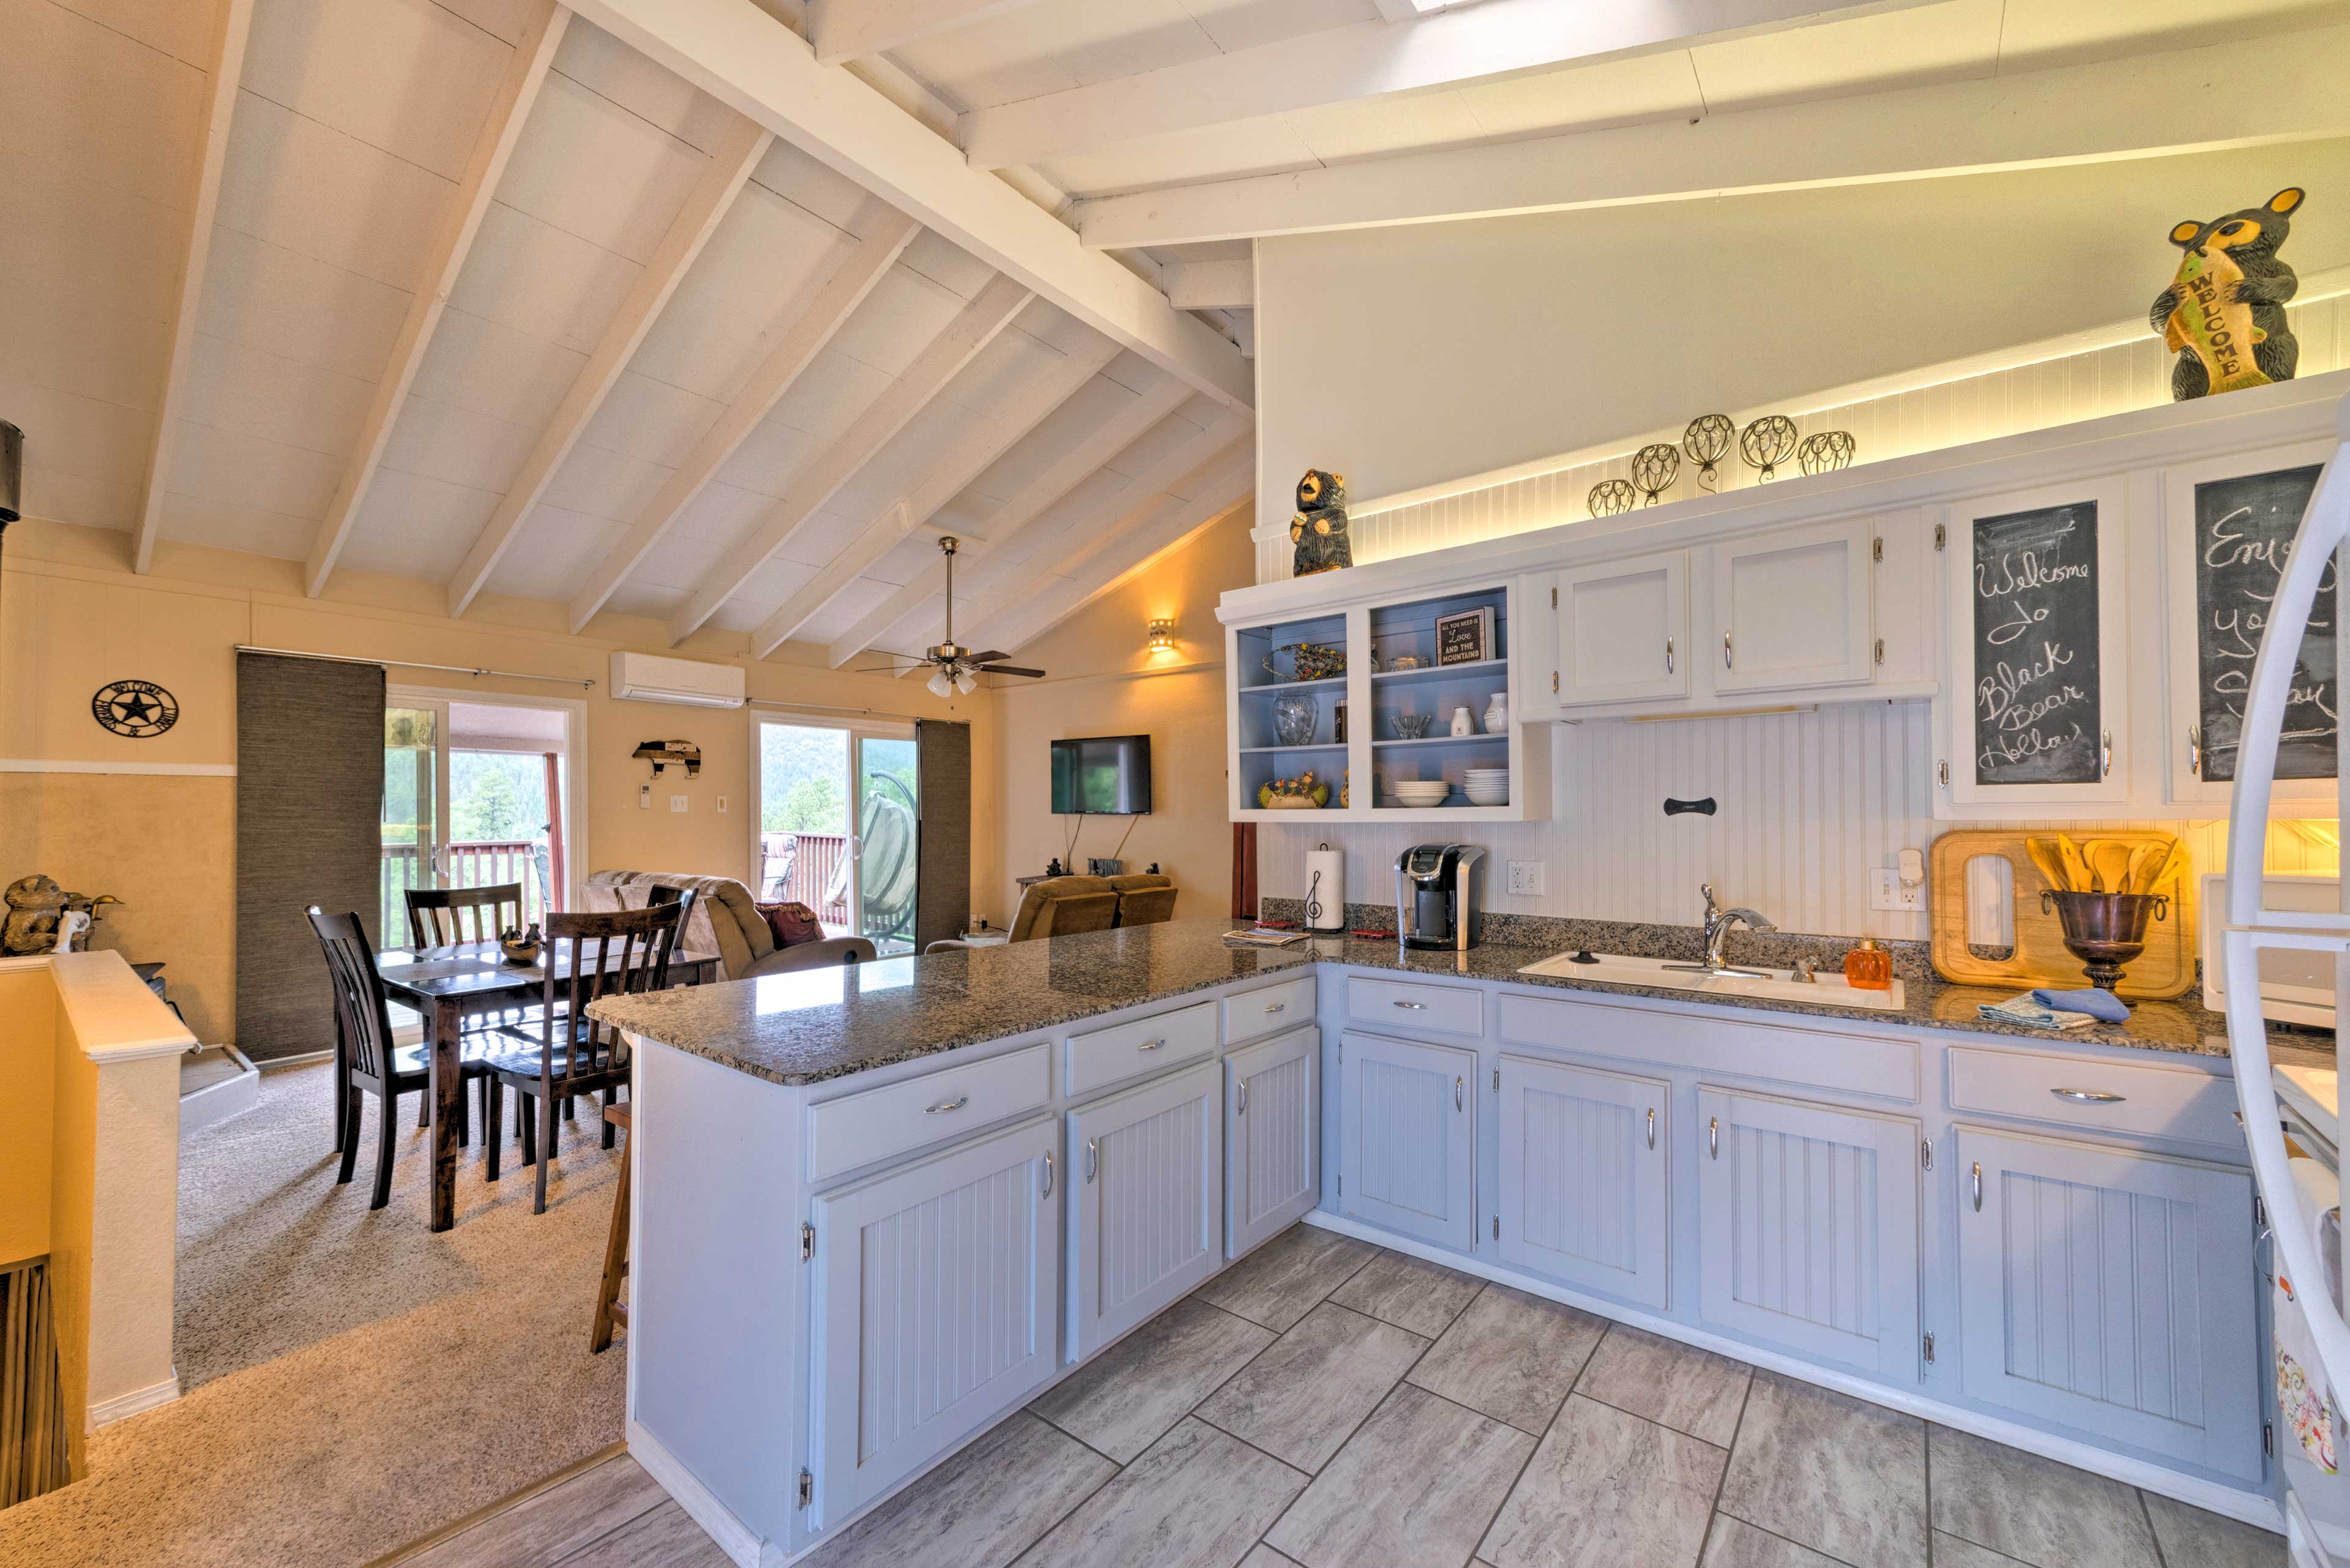 Feel at home in the bright kitchen.